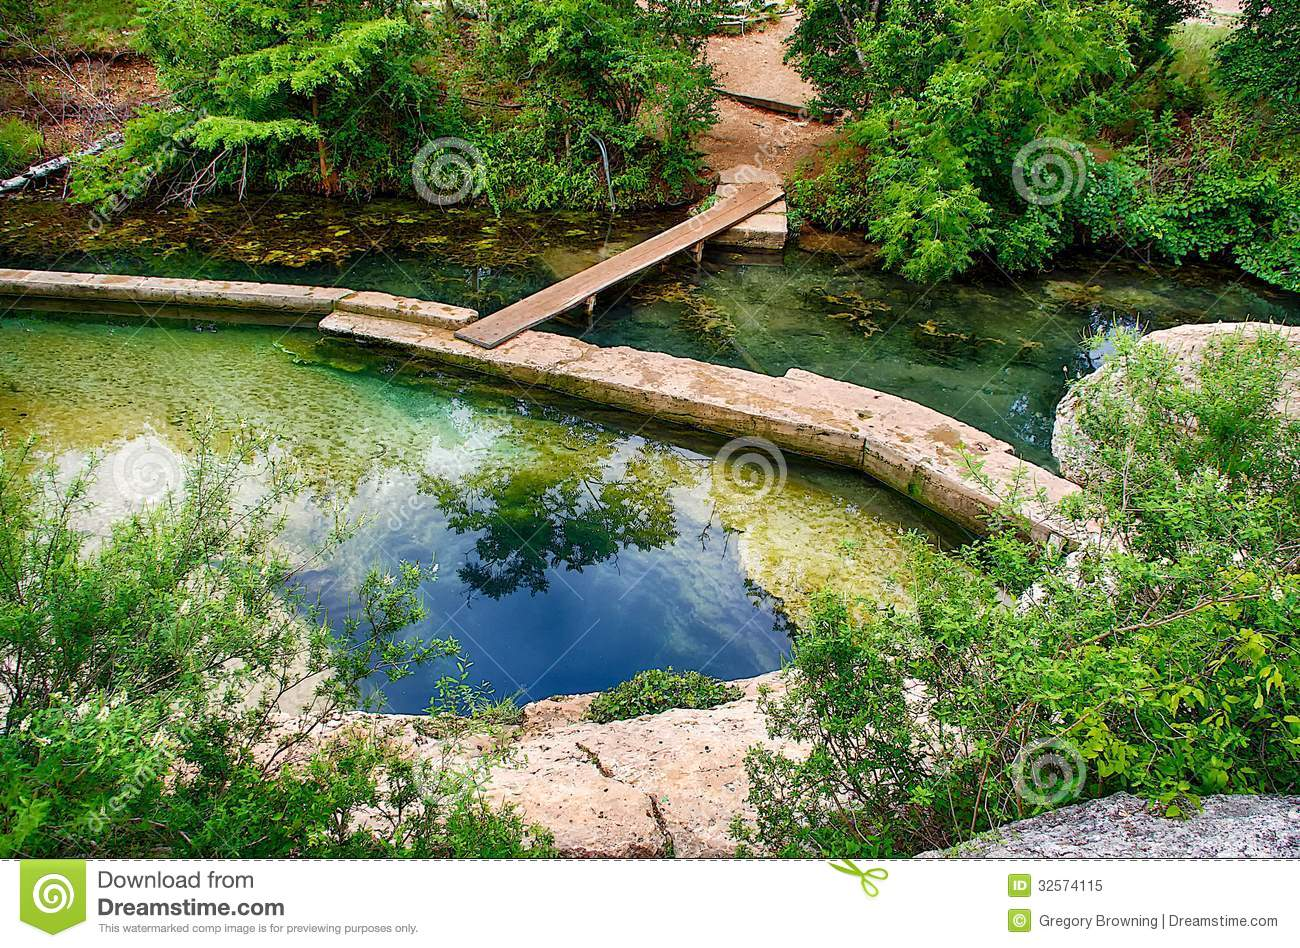 Jacobs Well near Wimberley, Texas is a unique geological